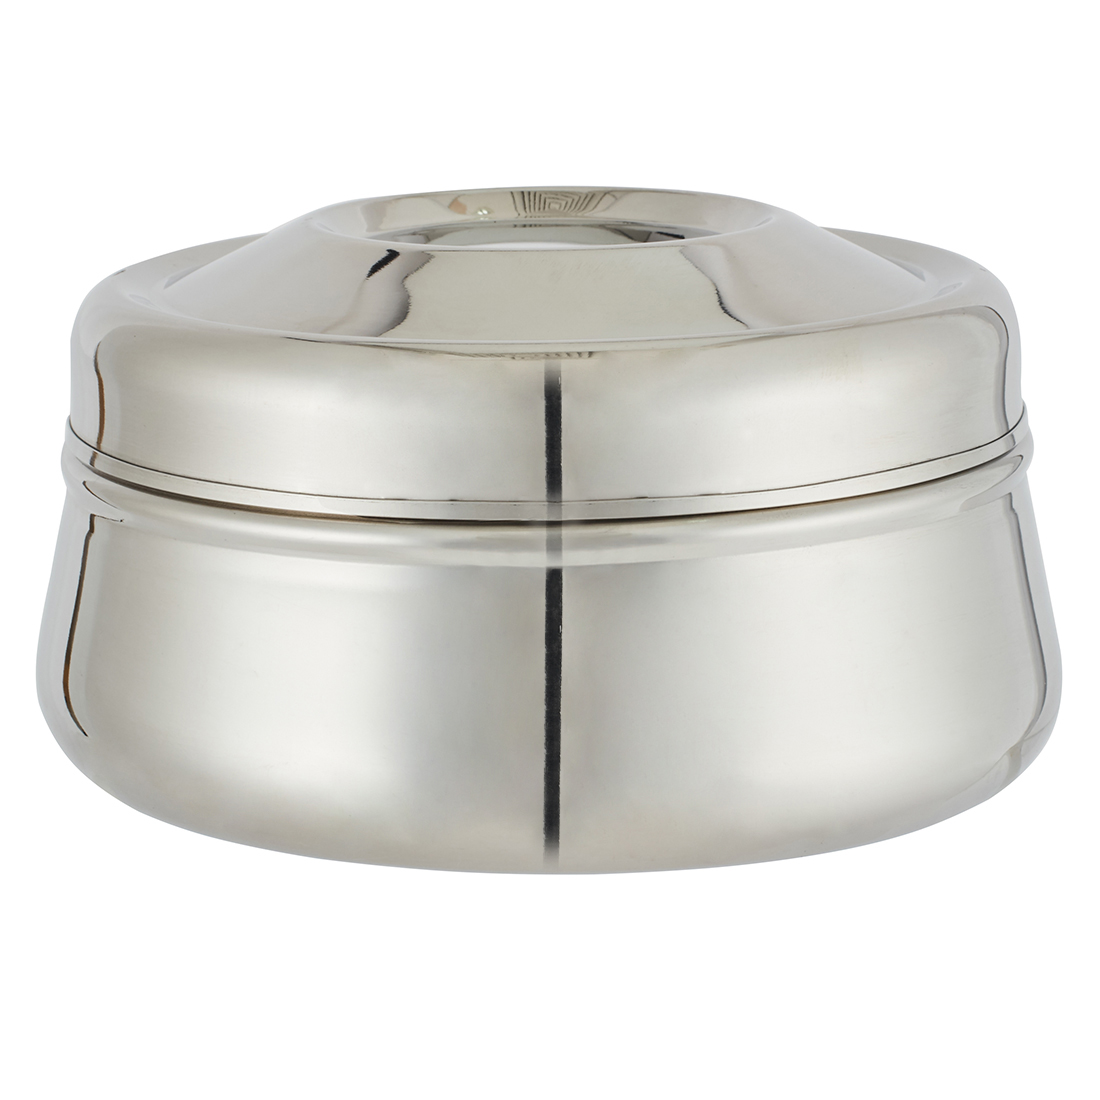 Cosmos Dabba Stainless steel Containers in Silver Colour by Living Essence